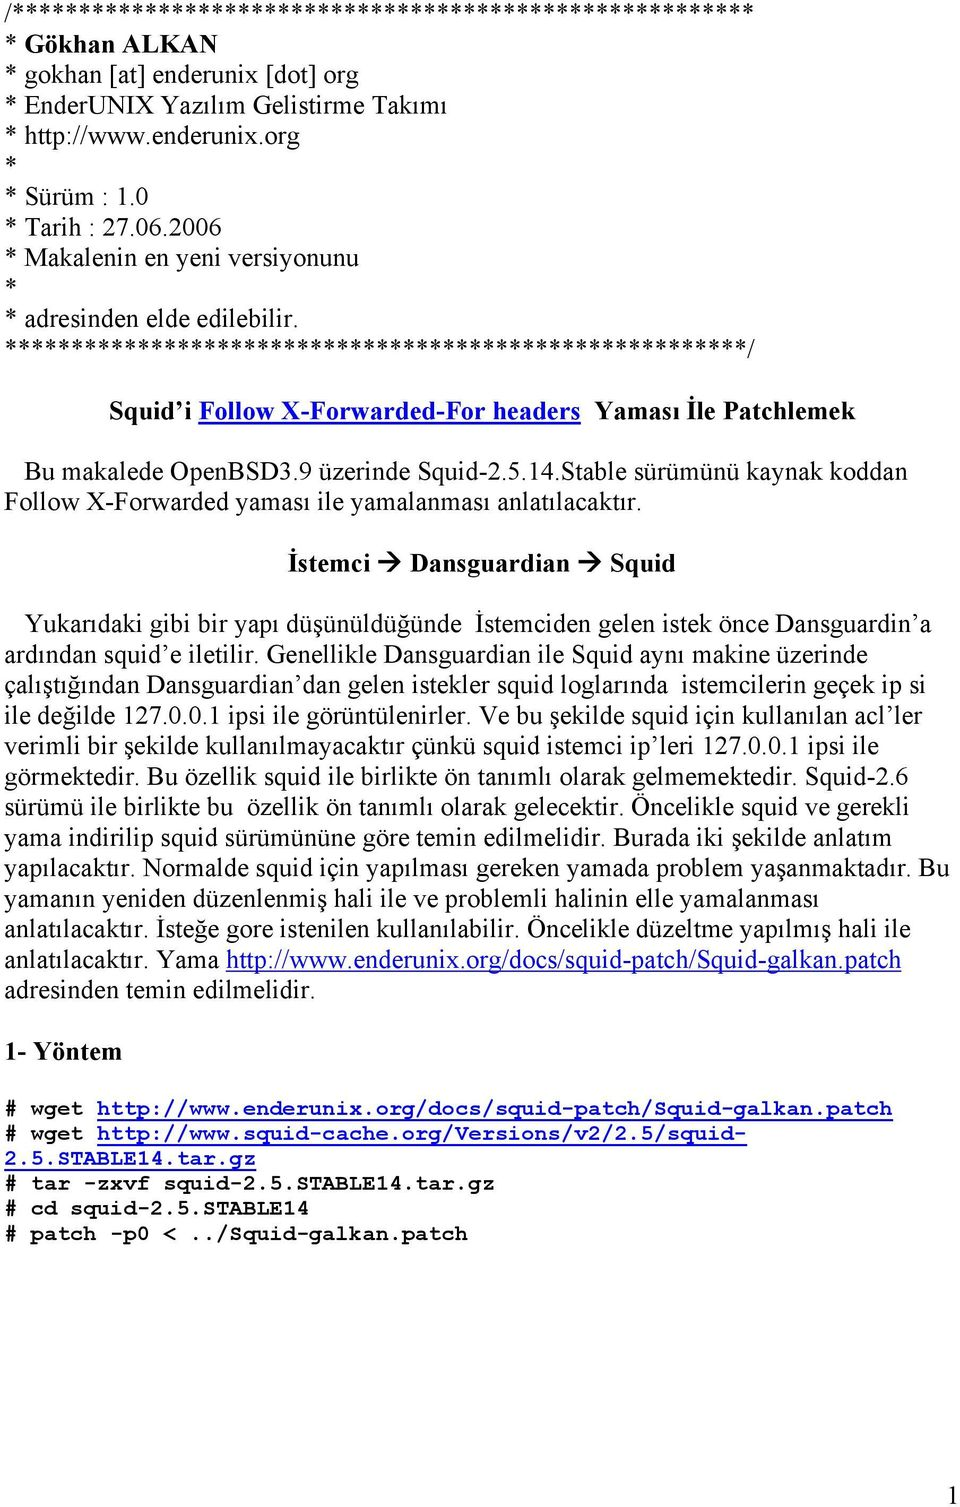 ********************************************************/ Squid i Follow X-Forwarded-For headers Yaması İle Patchlemek Bu makalede OpenBSD3.9 üzerinde Squid-2.5.14.